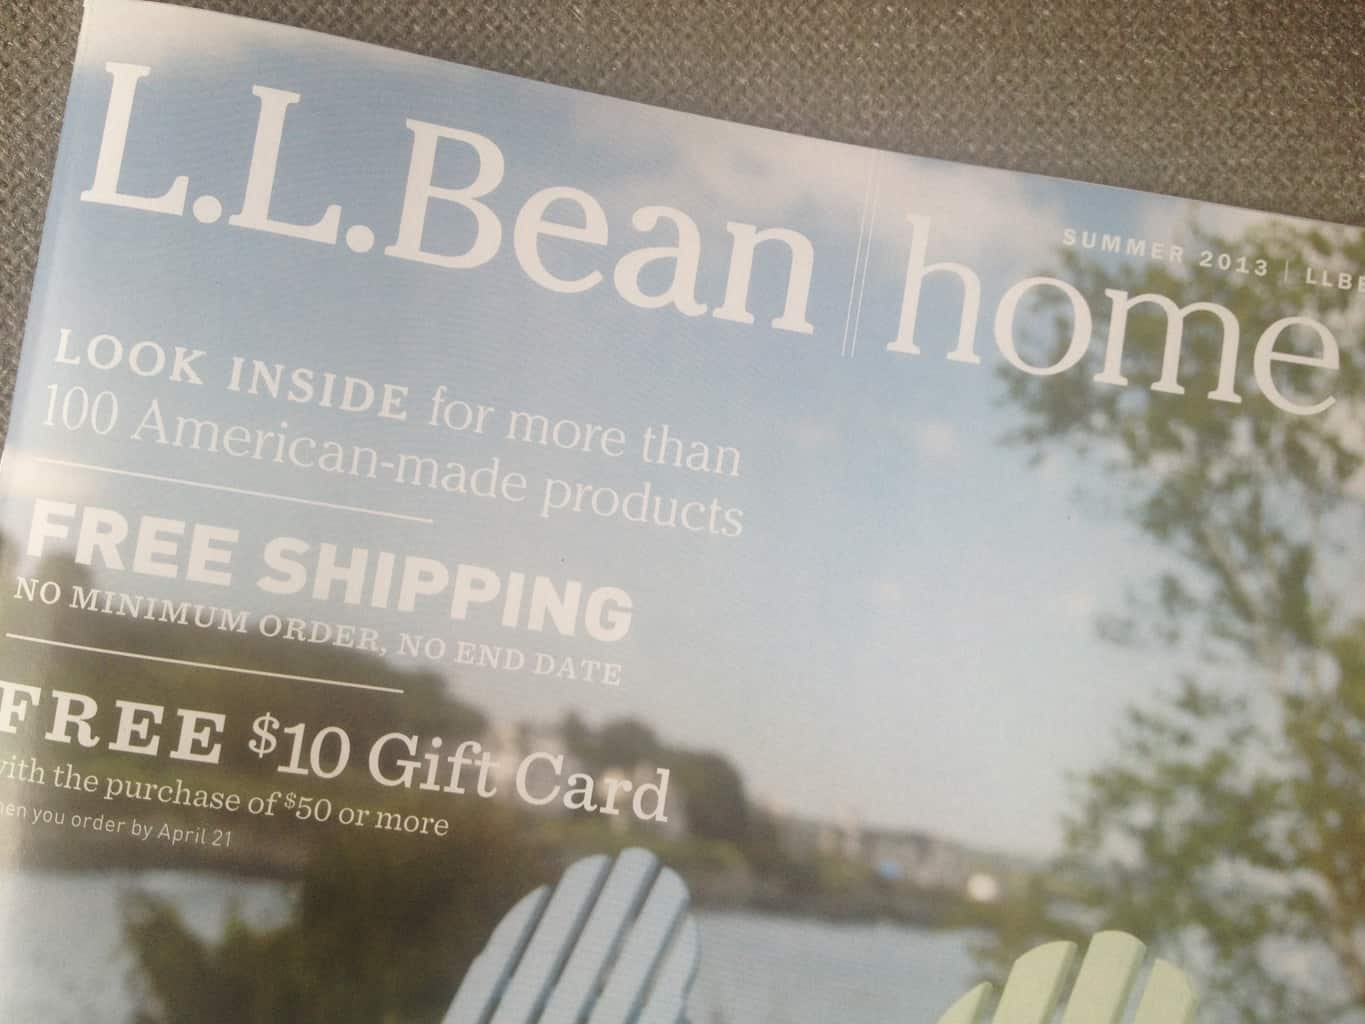 Getting Ready for Summer? Grab the LL Bean Home Catalog for Indoor & Outdoor Furniture Made in USA